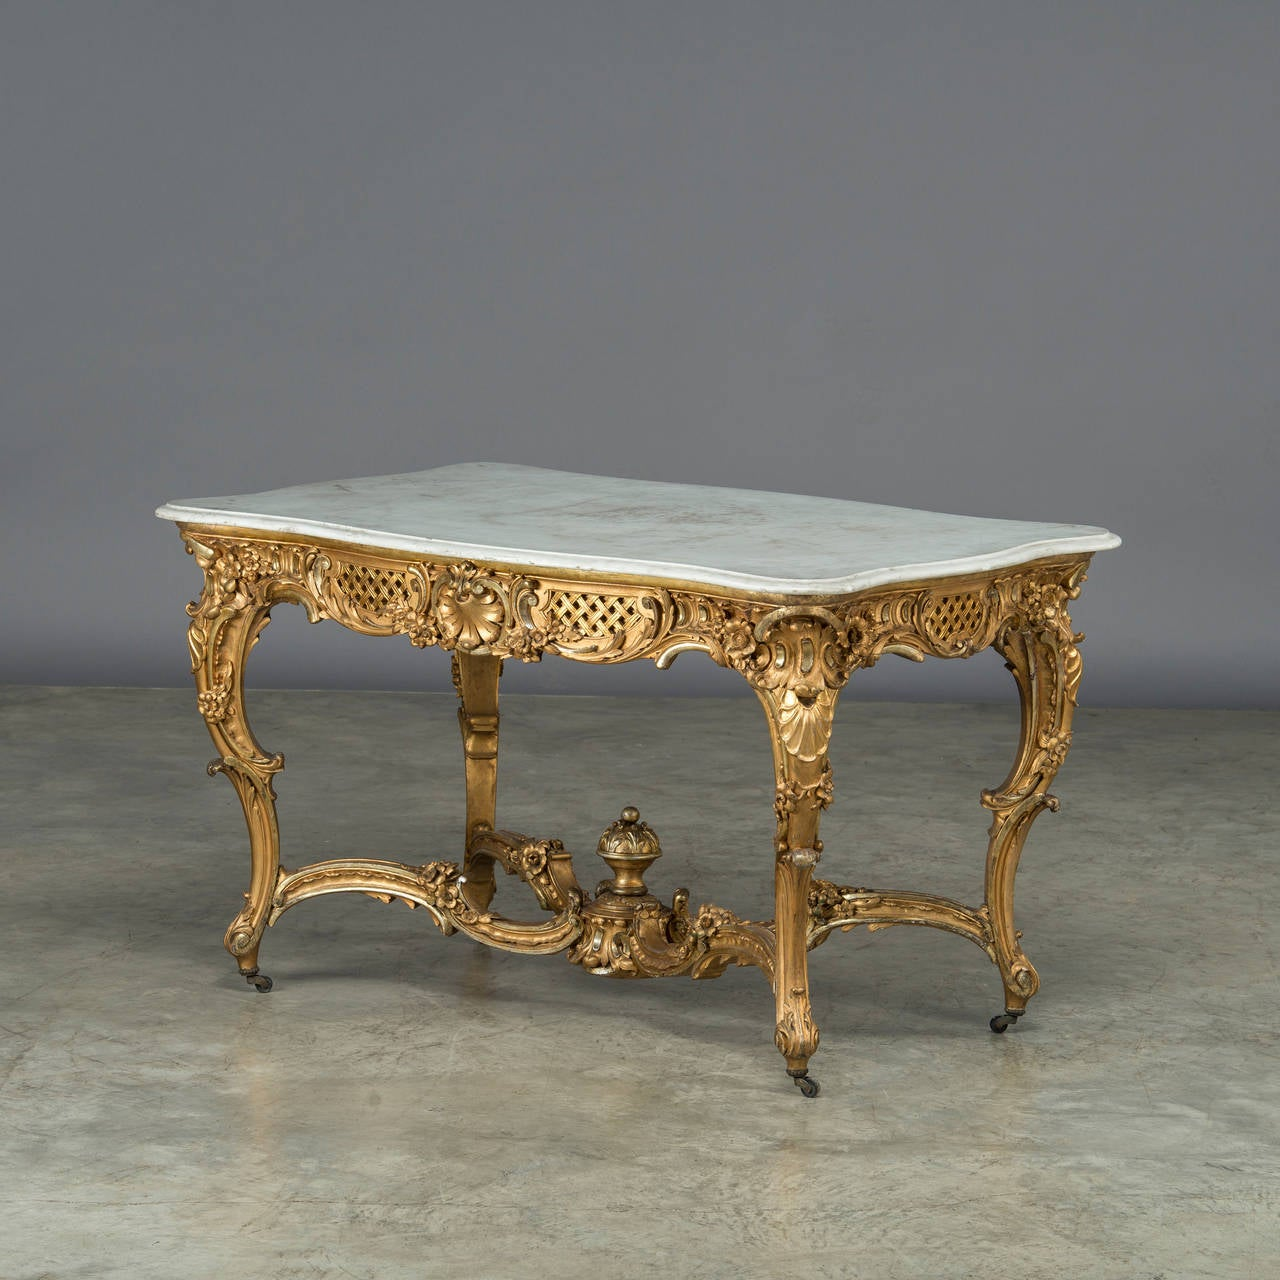 royal provenience salon table from amalienborg castle denmark for sale at 1stdibs. Black Bedroom Furniture Sets. Home Design Ideas